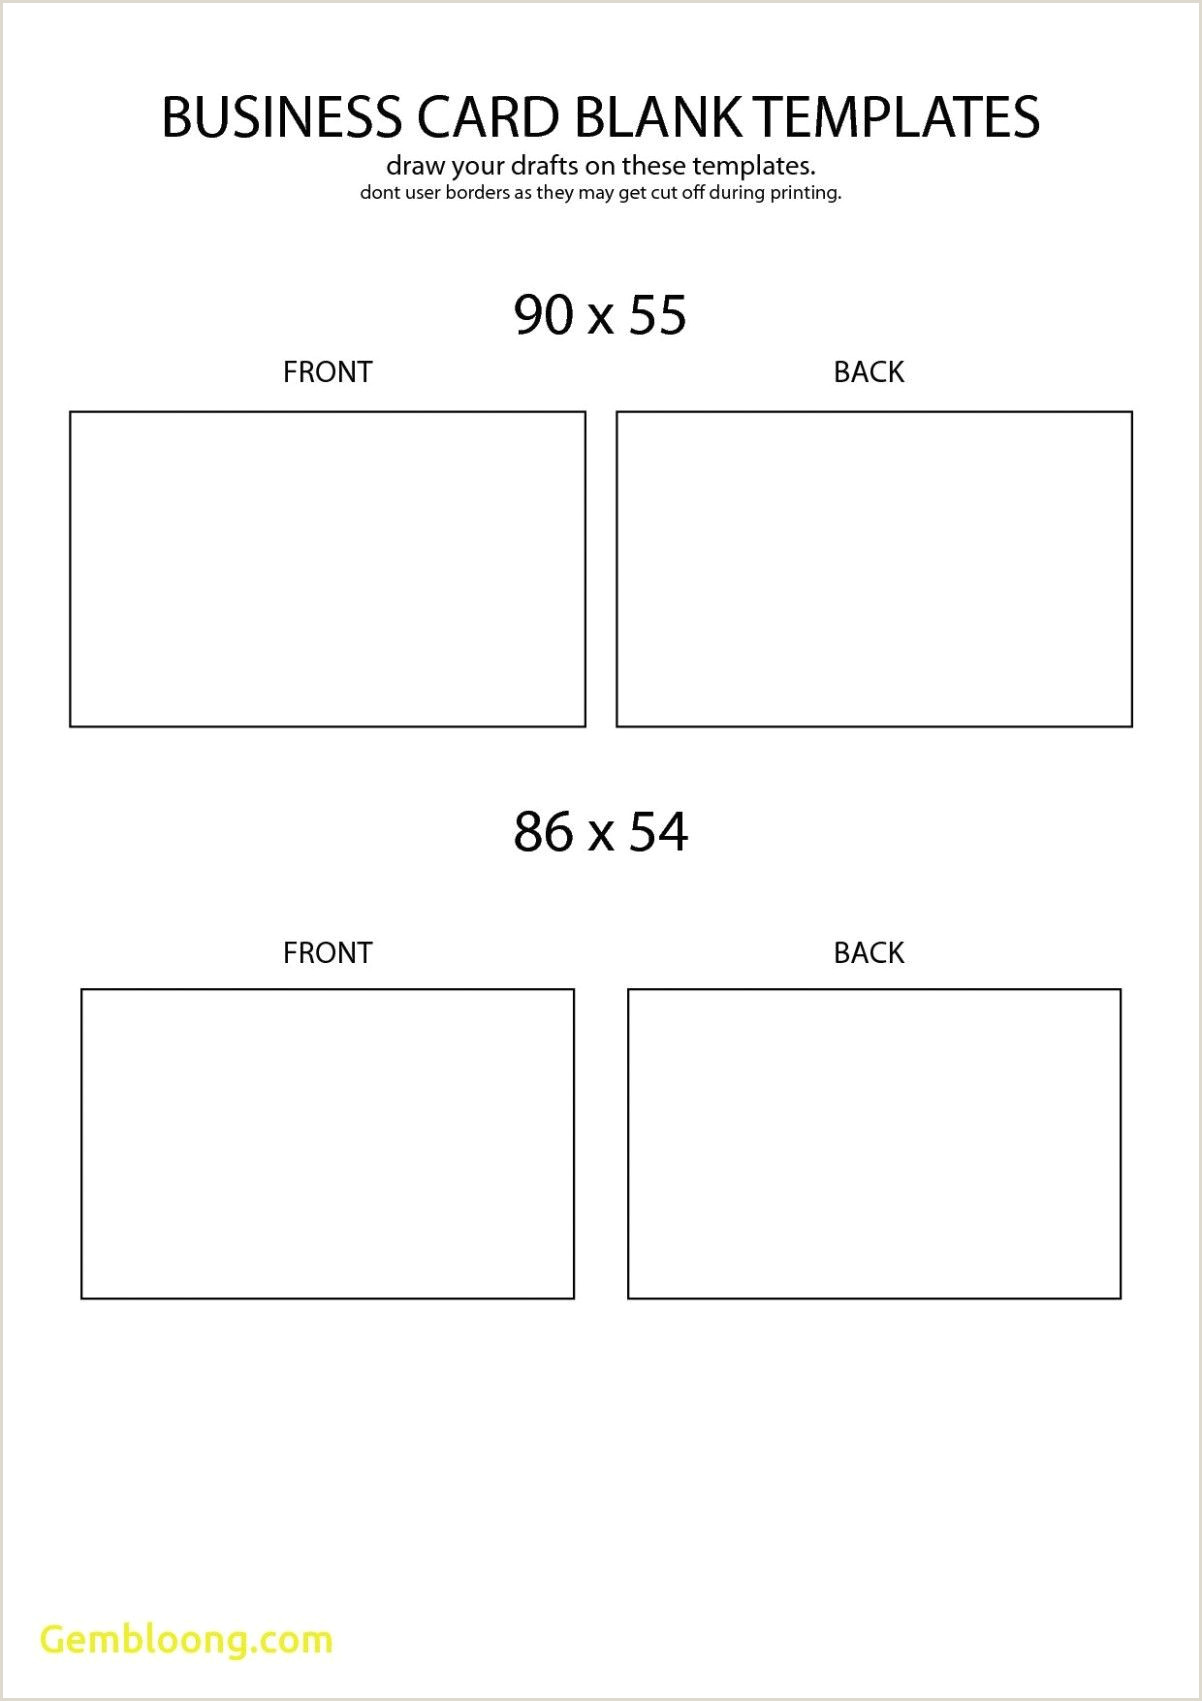 How To Make Front And Back Business Cards In Word Free Blank Business Card Template Front And Back Design